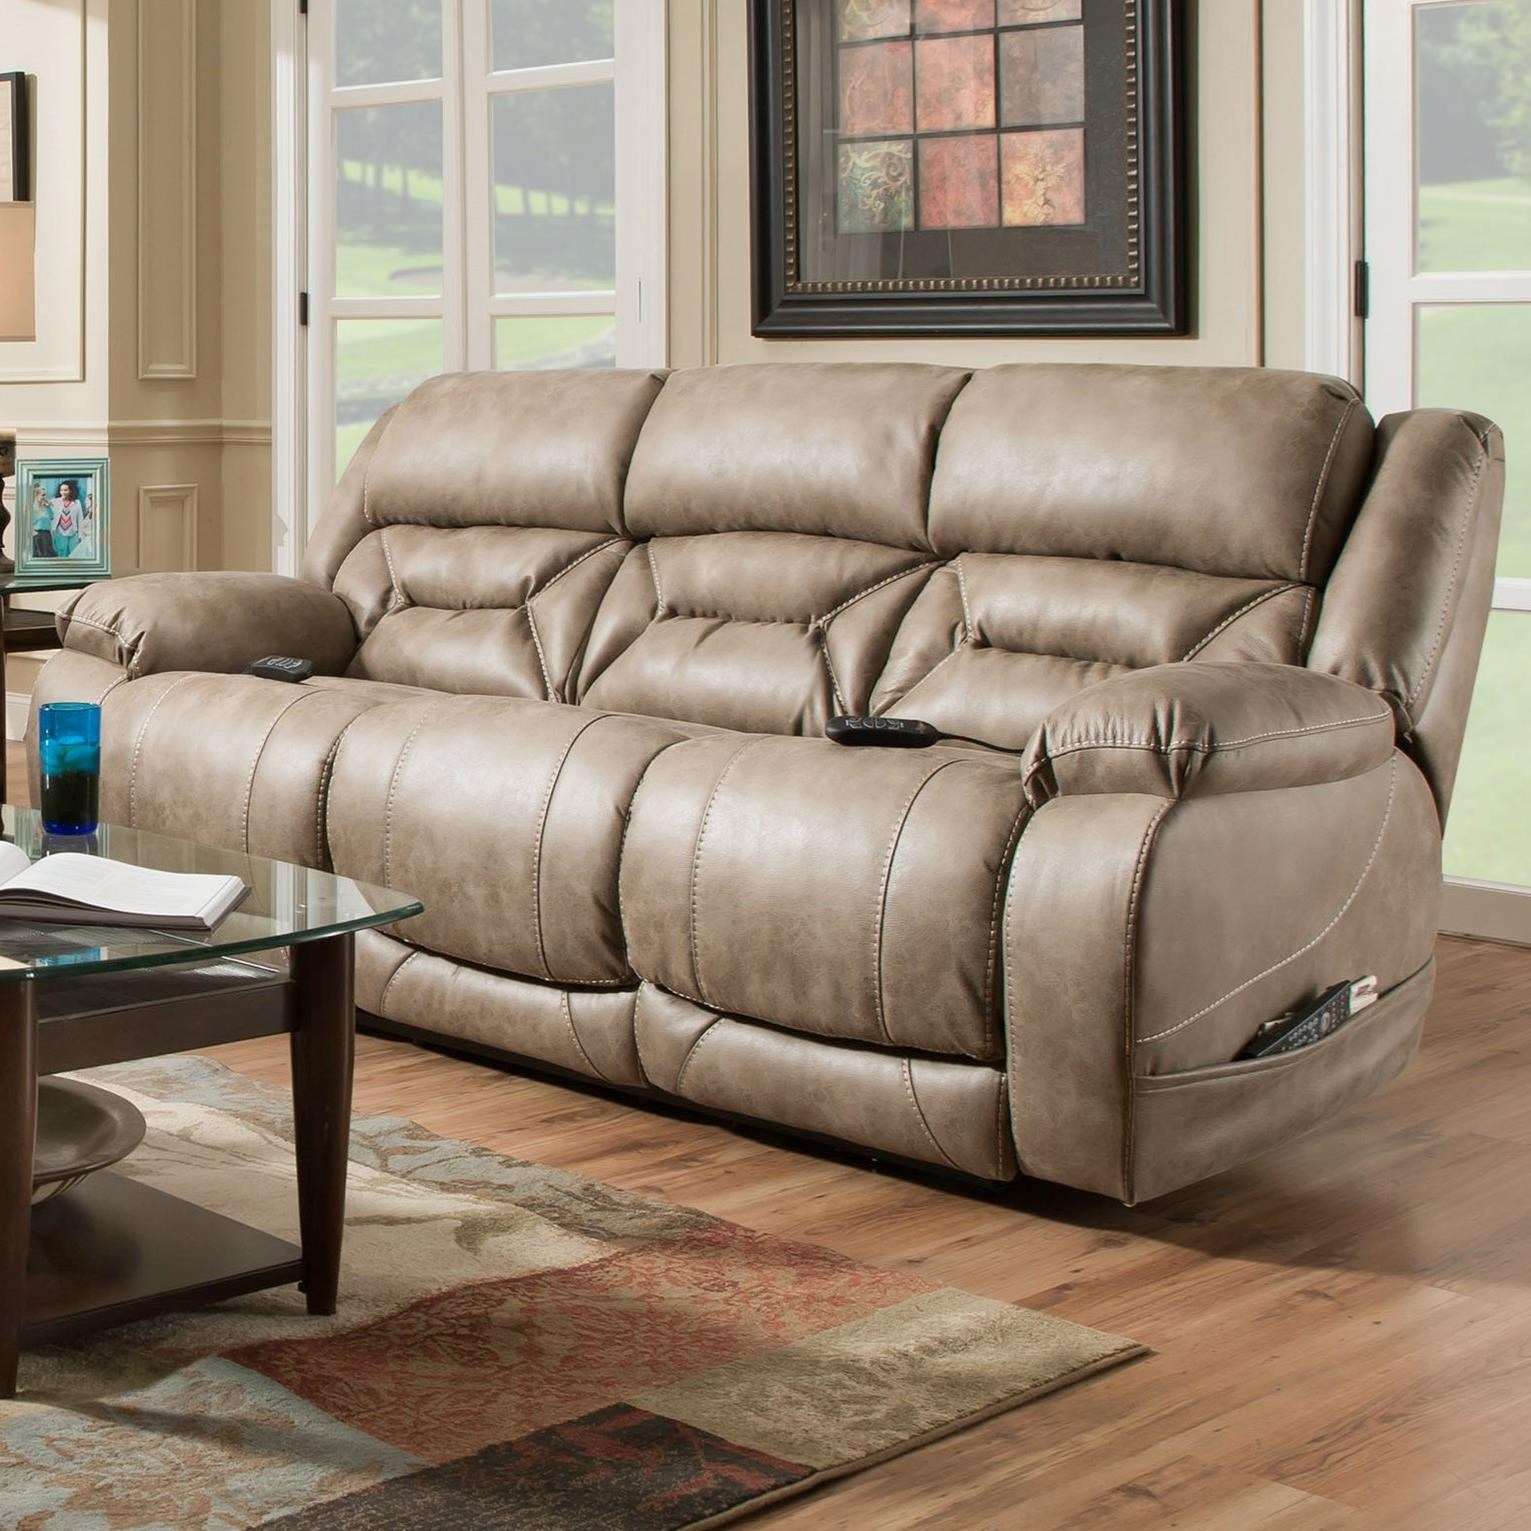 HomeStretch Enterprise Power Reclining Sofa - Item Number: 158-37-17